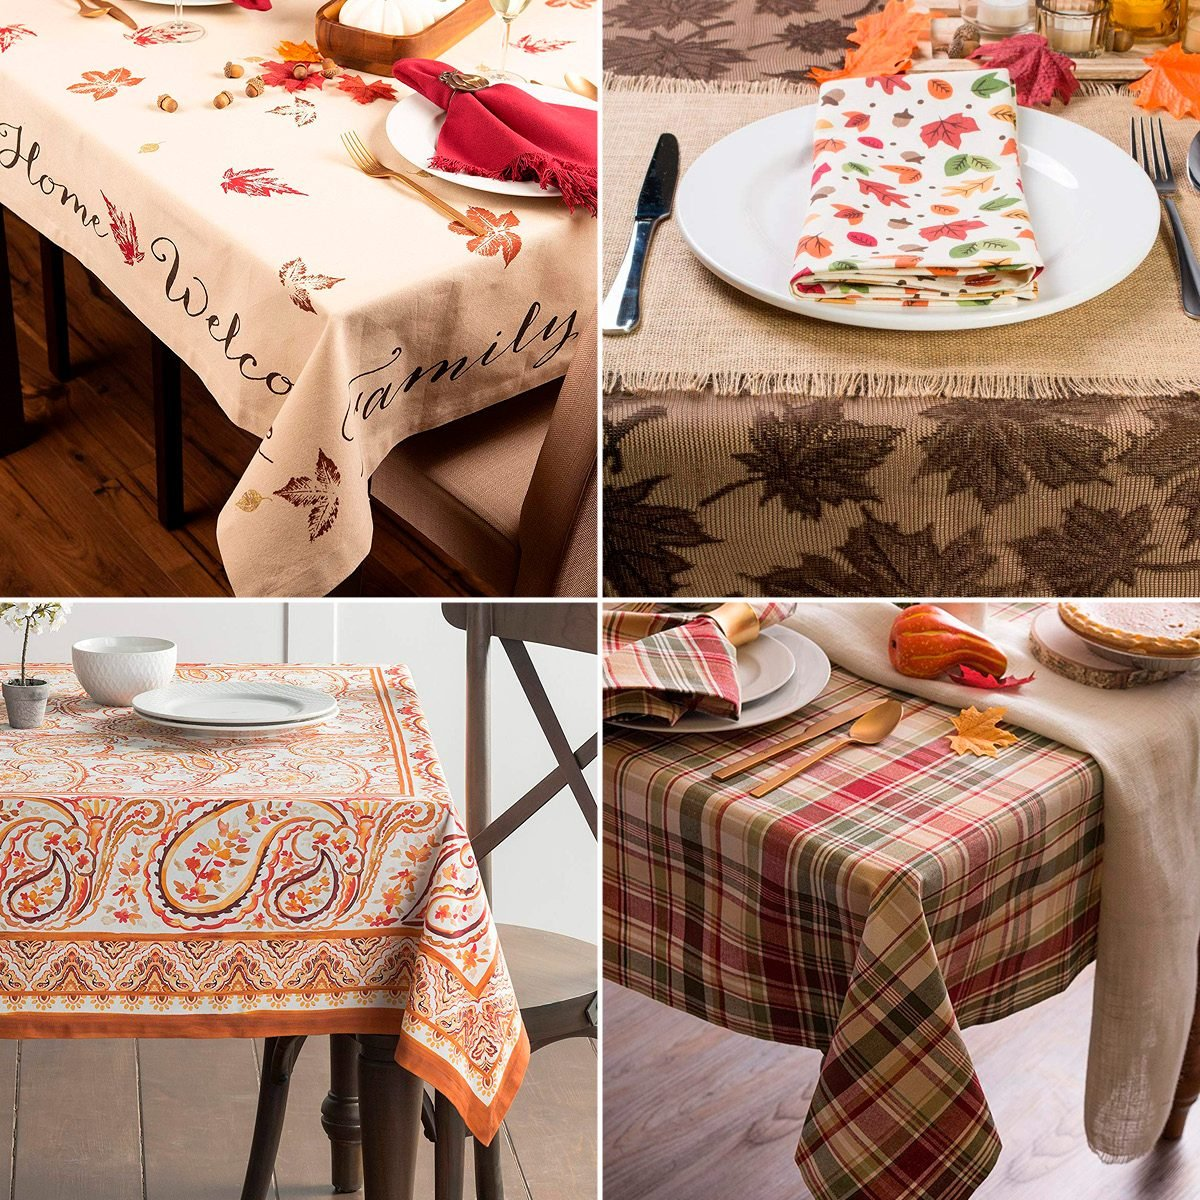 Lace Tablecloth Cleaning For Its Best Taste of Home